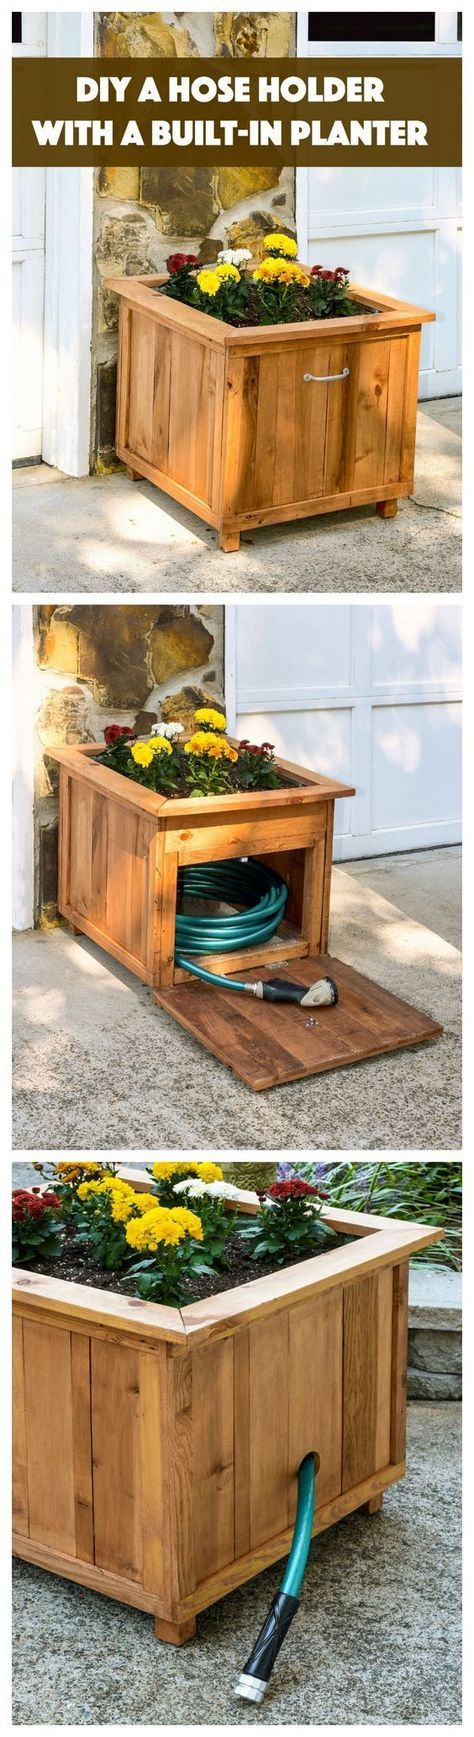 Build a unique hose holder using recycled pallet wood! This holder has a…